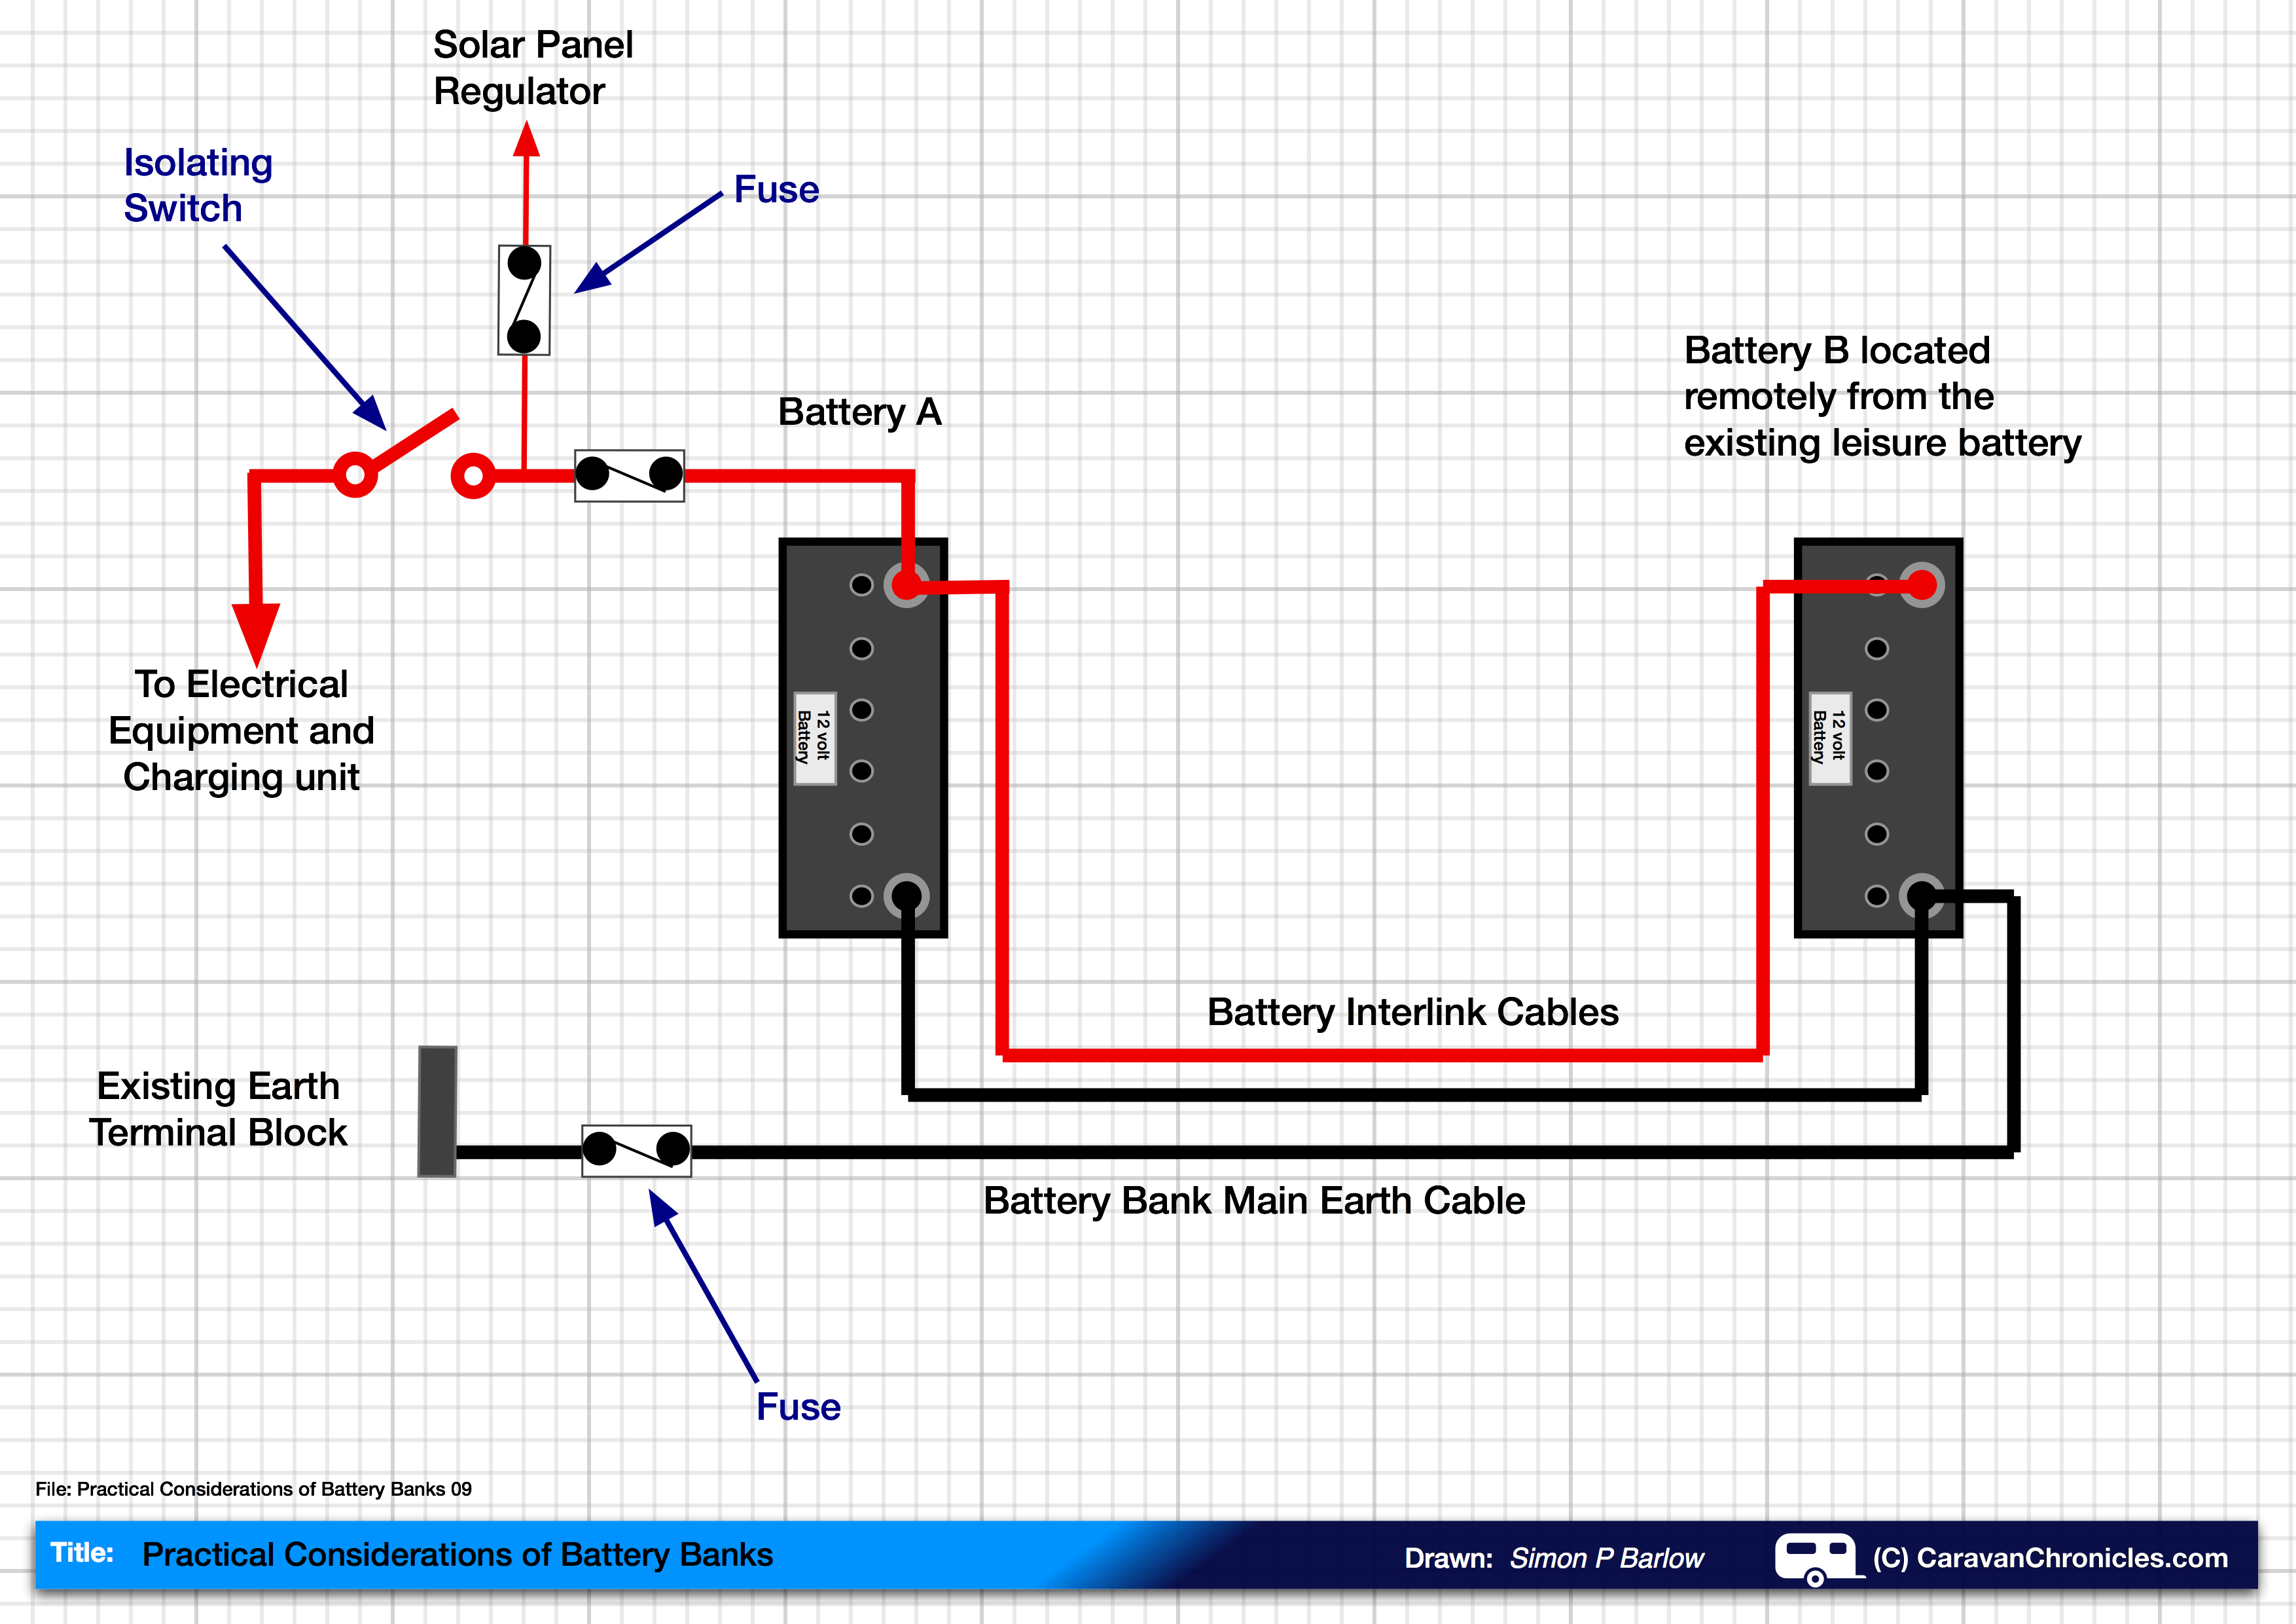 Practical Considerations of Battery Banks 09